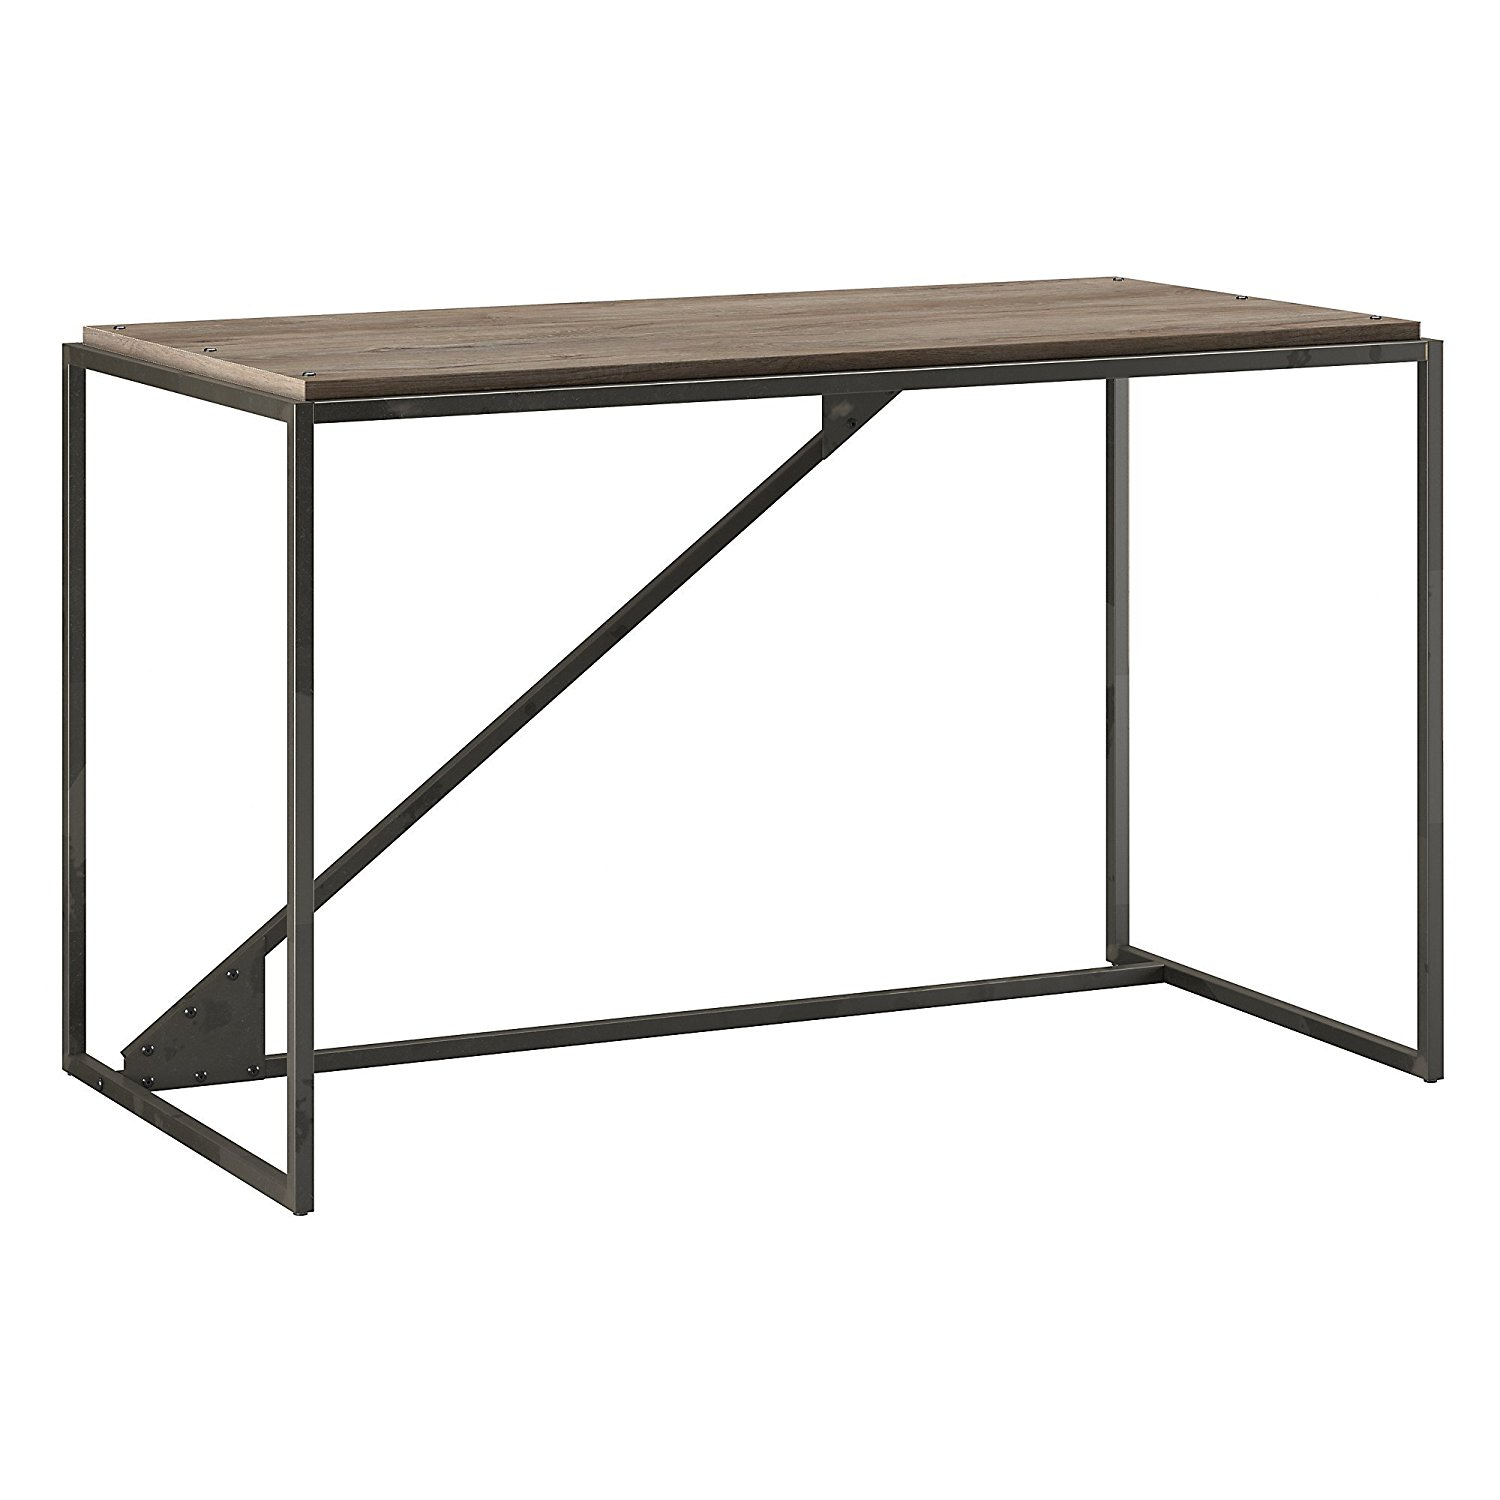 Get Quotations Bush Furniture Refinery 50w Desk In Rustic Gray